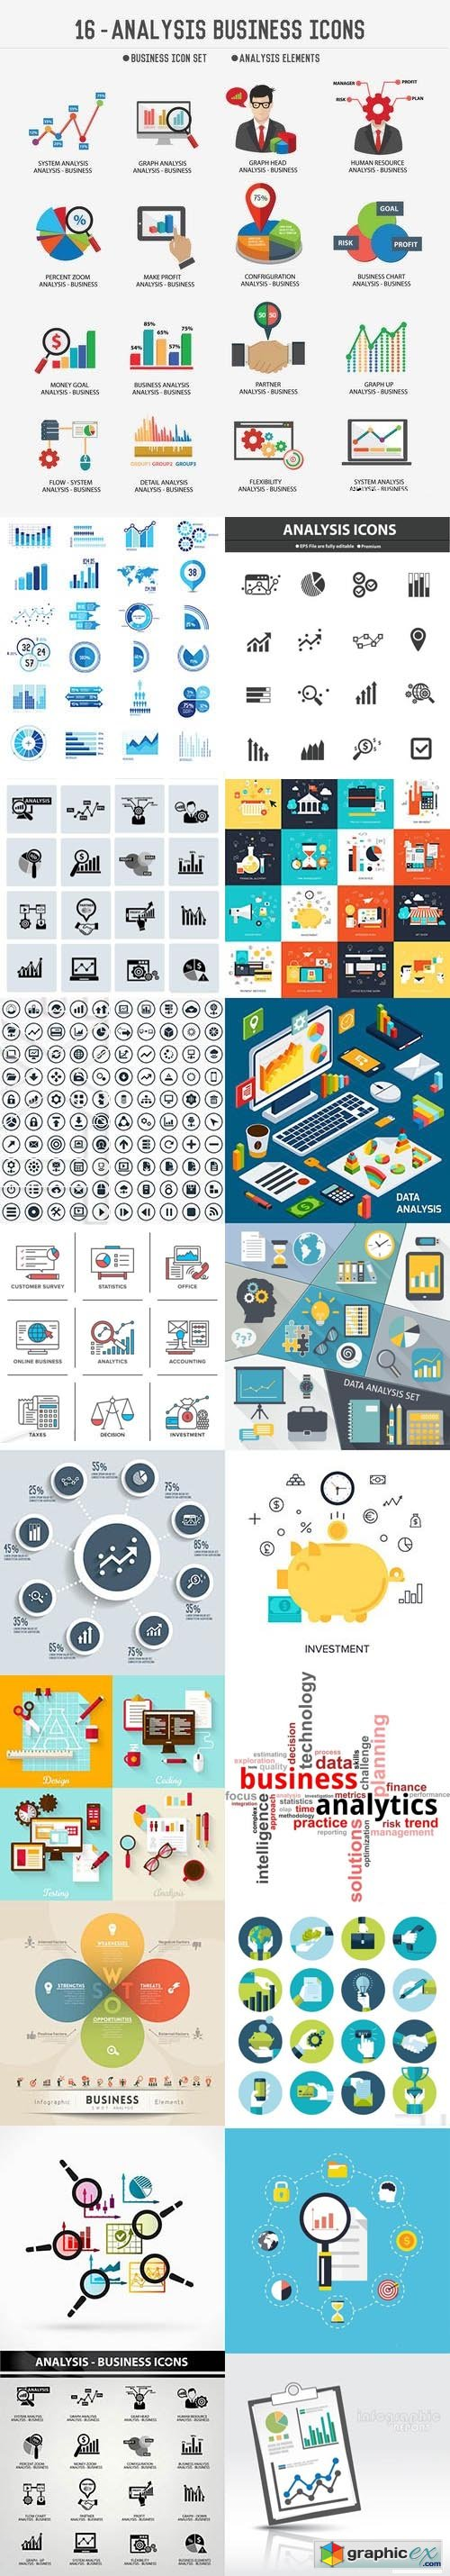 Business Analysis Icons